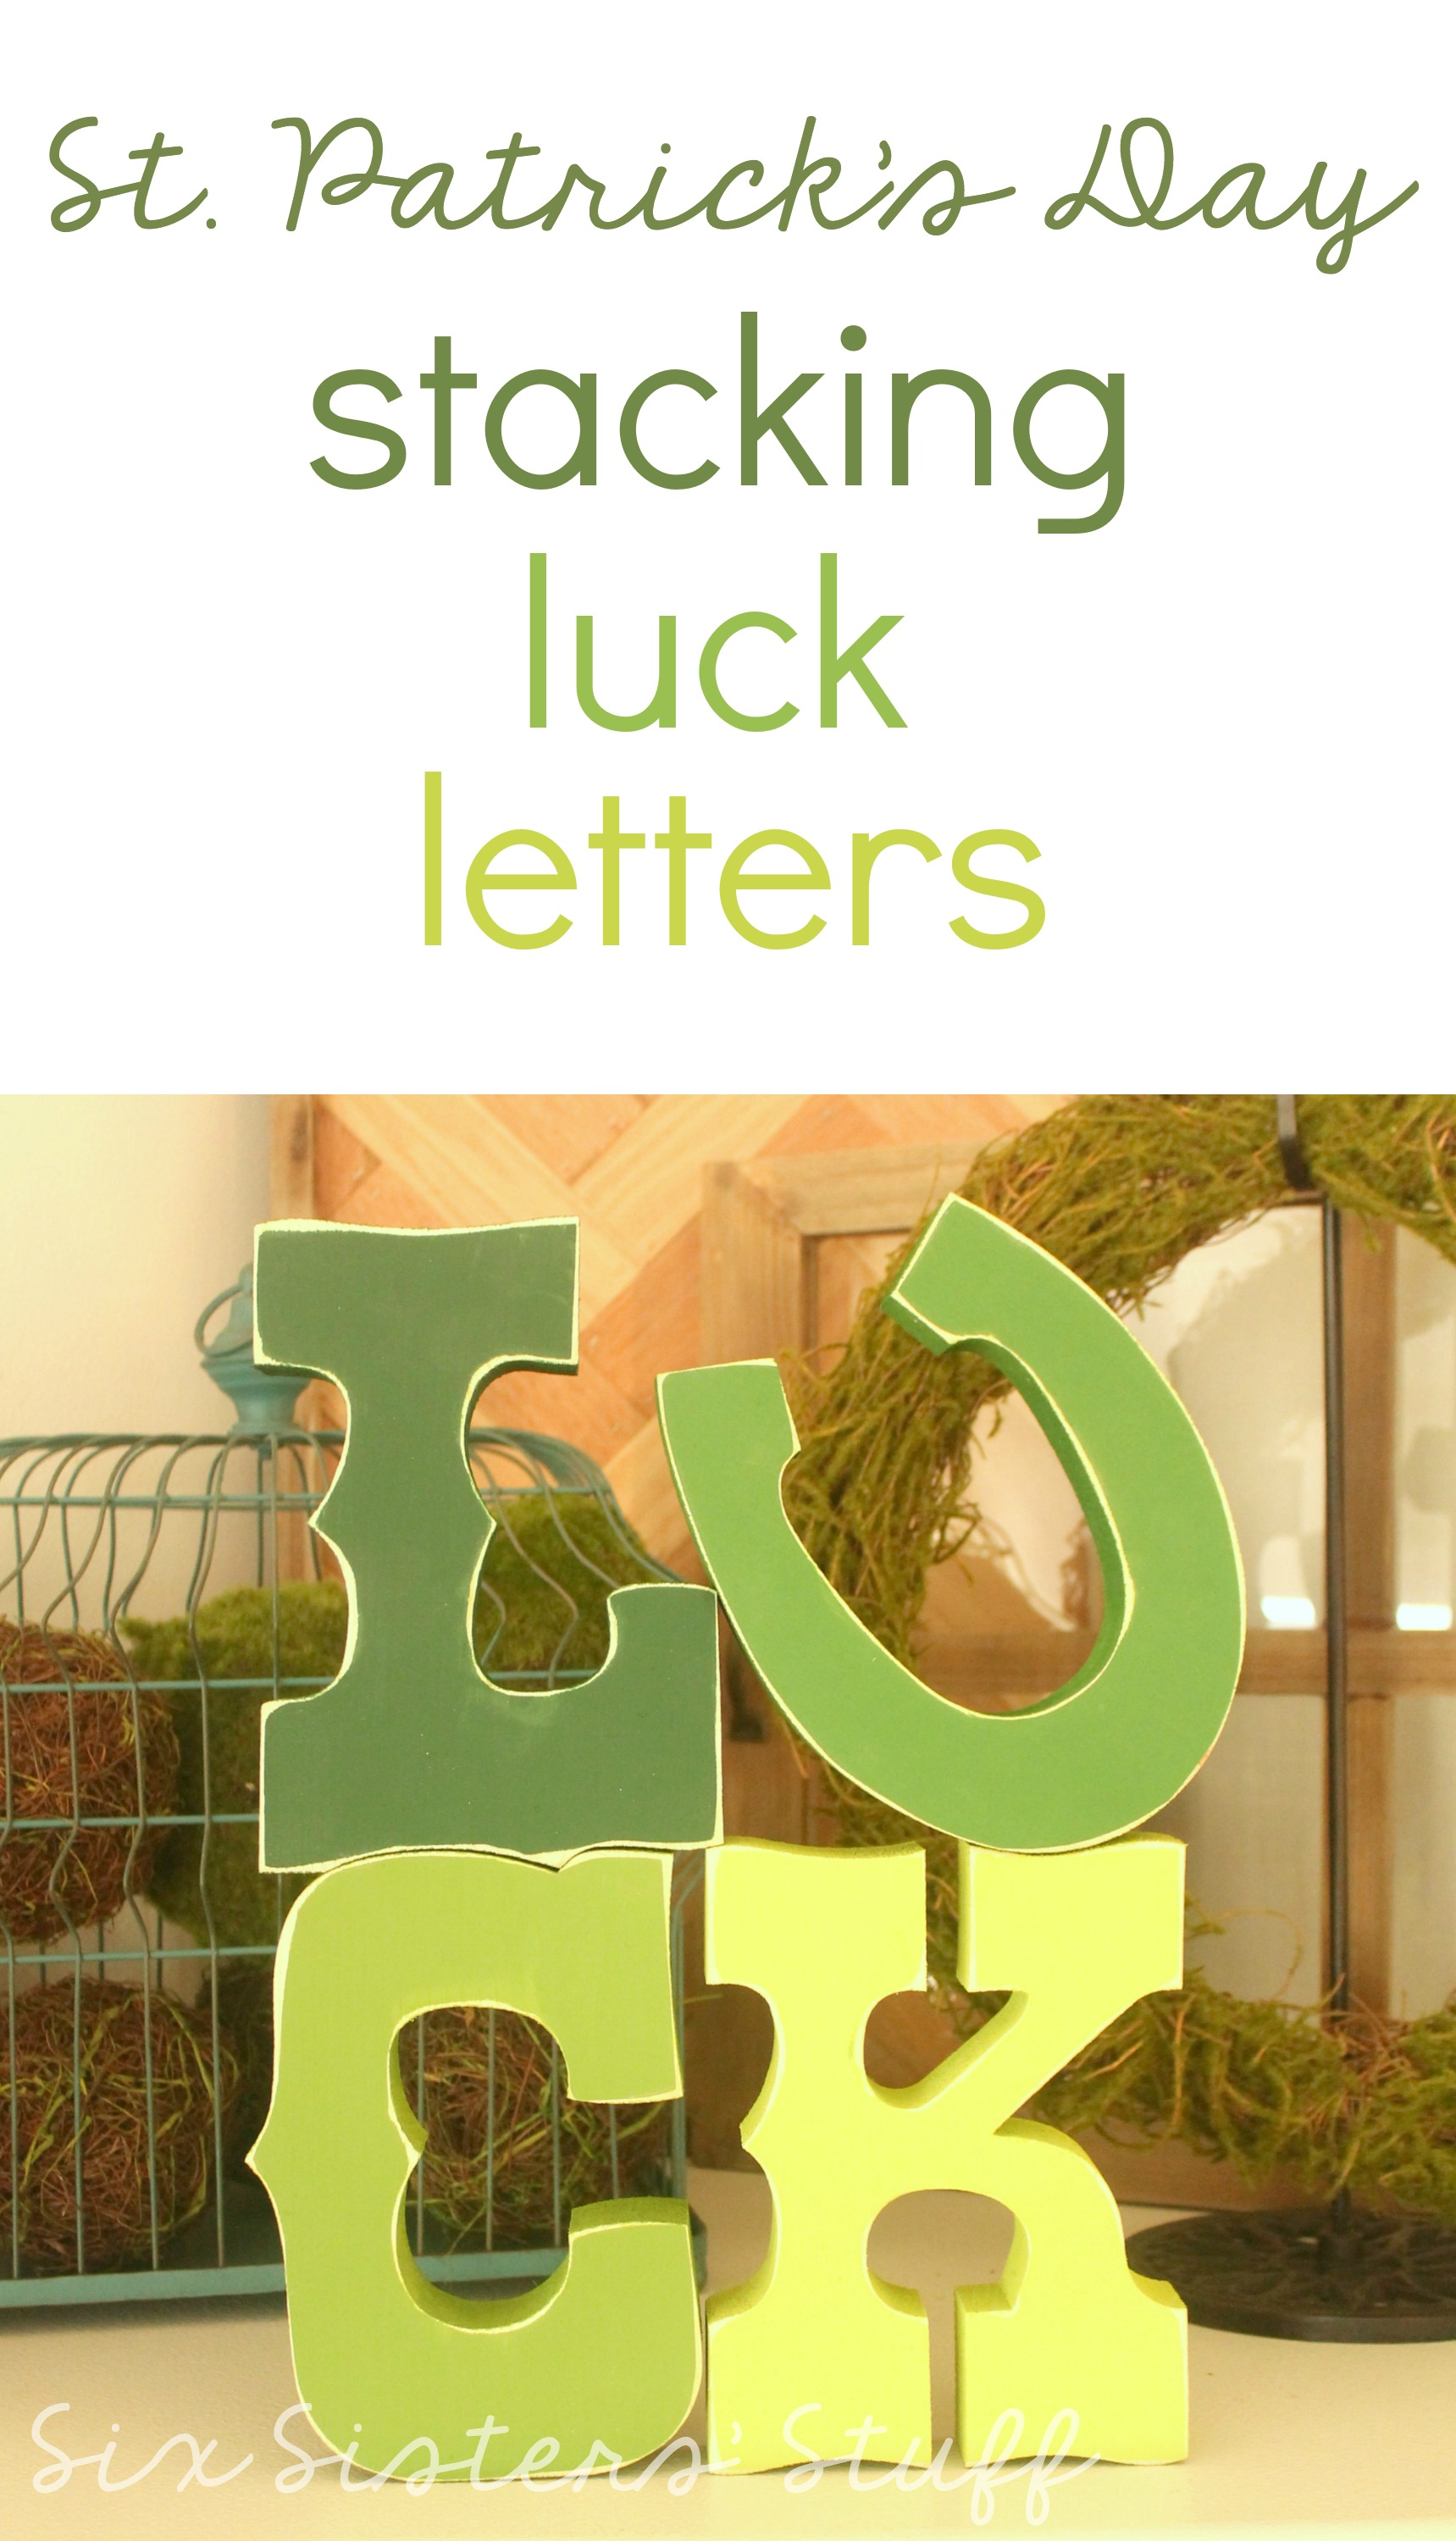 Stacking Luck Letters for St. Patrick's Day